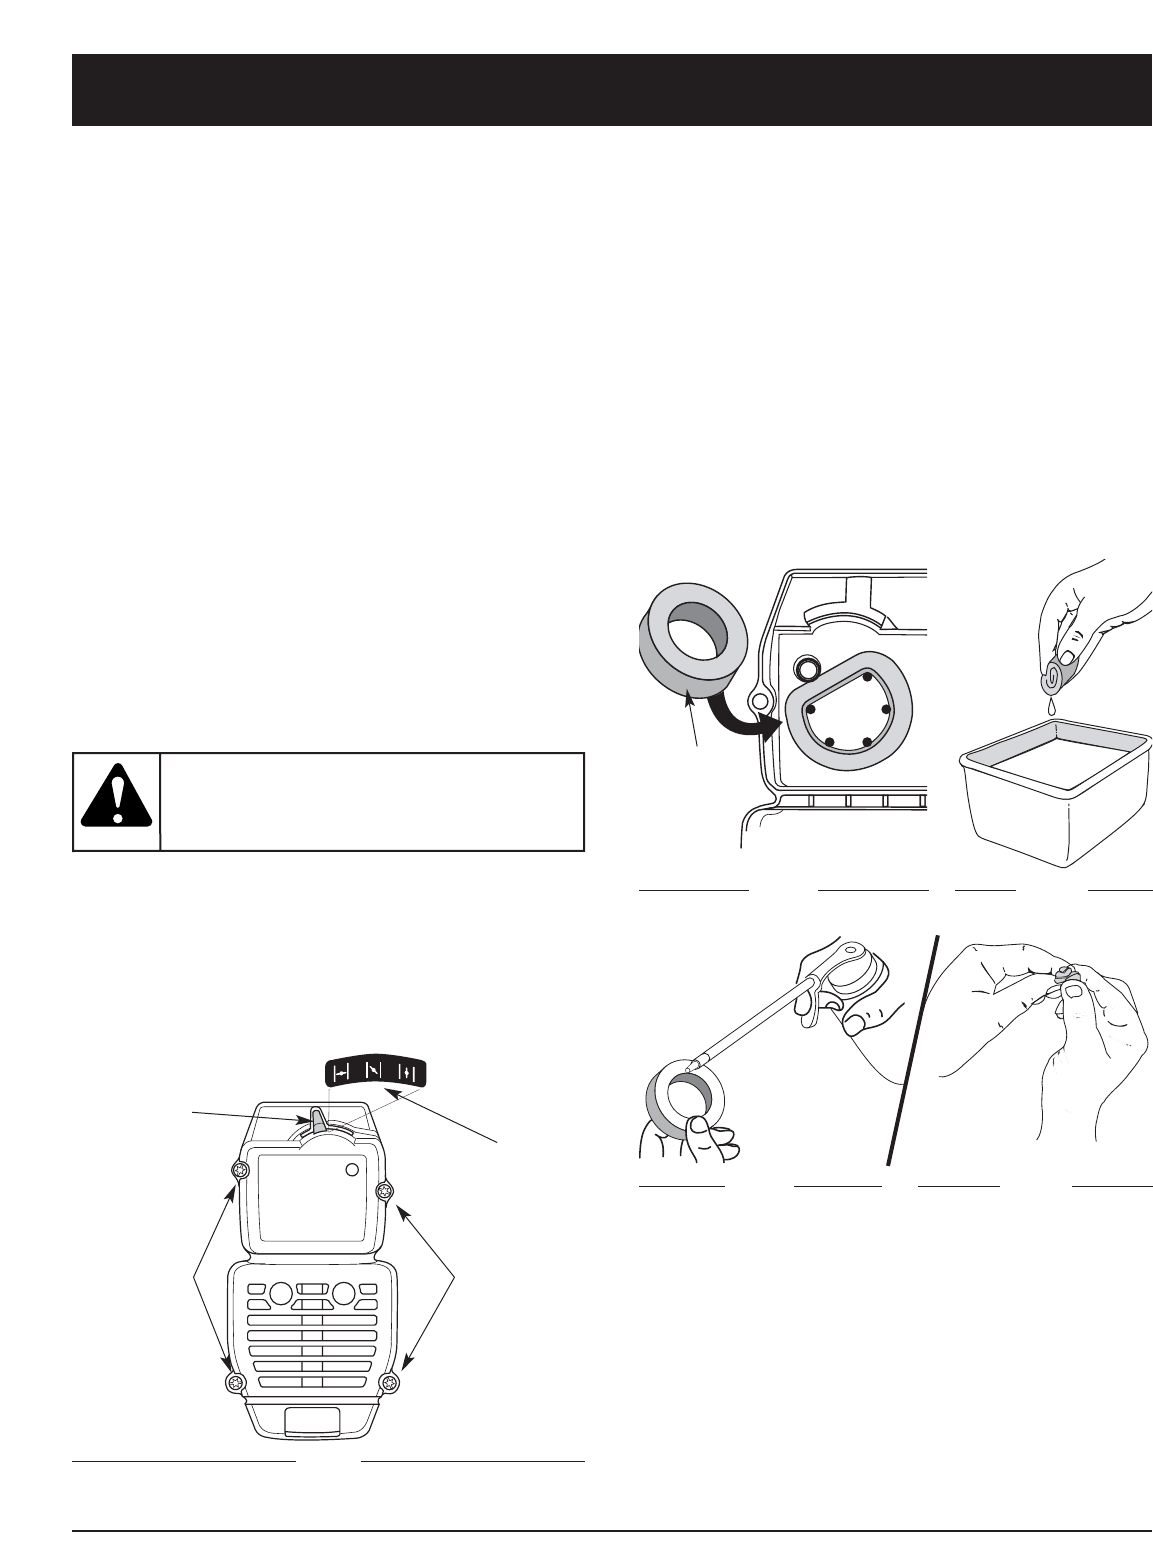 Page 13 of McCulloch Trimmer MT700 User Guide